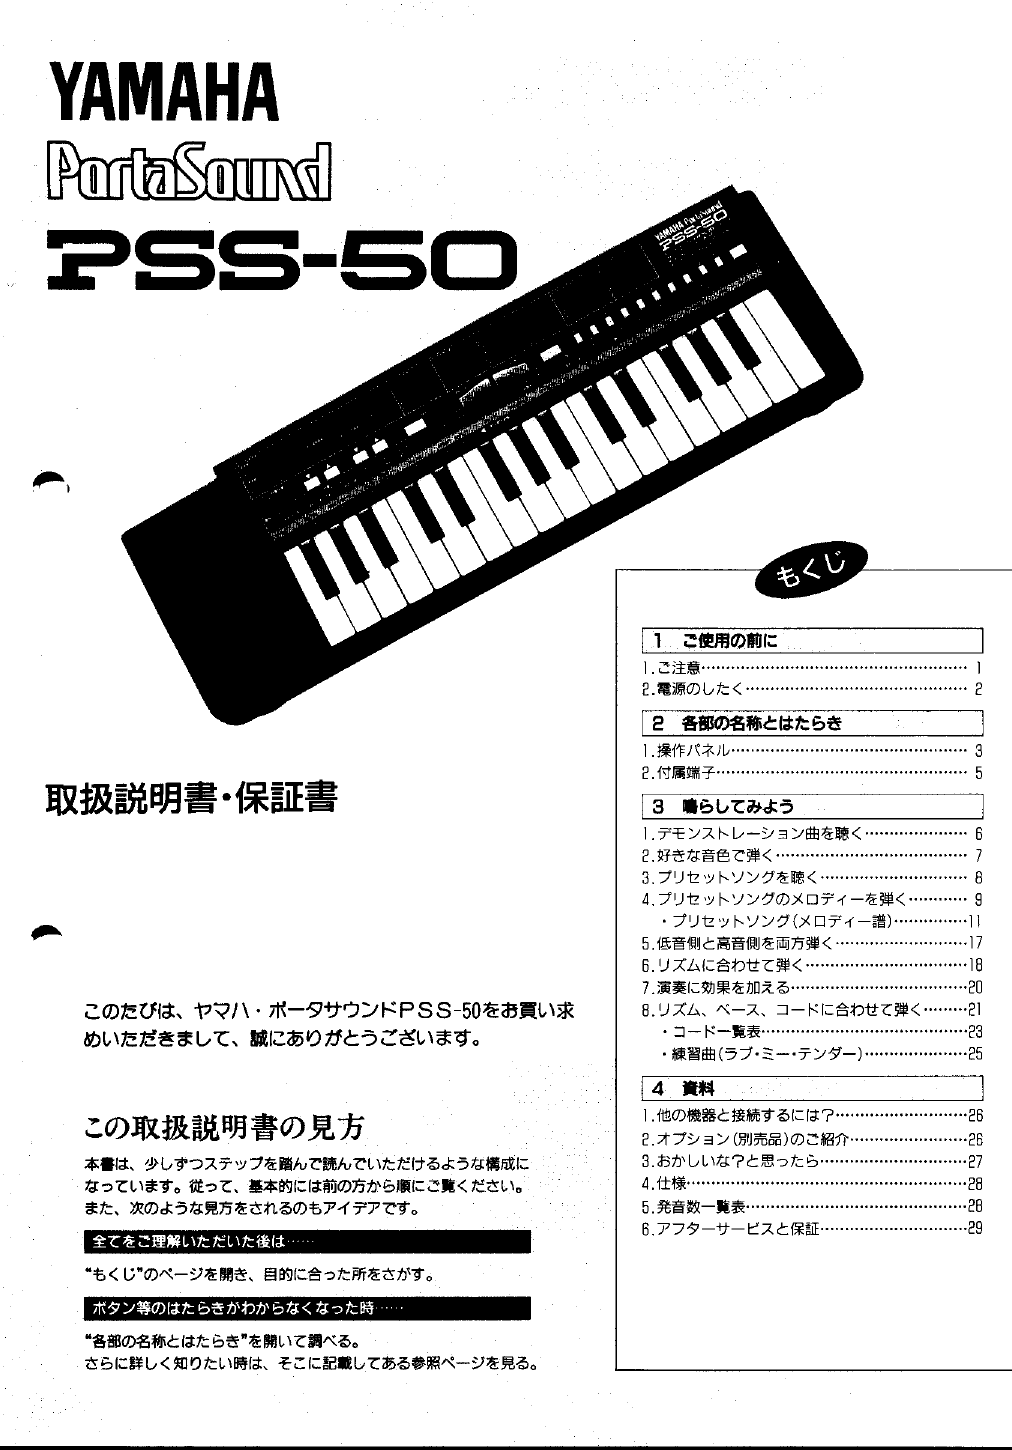 Yamaha Electronic Keyboard pss-50 User Guide